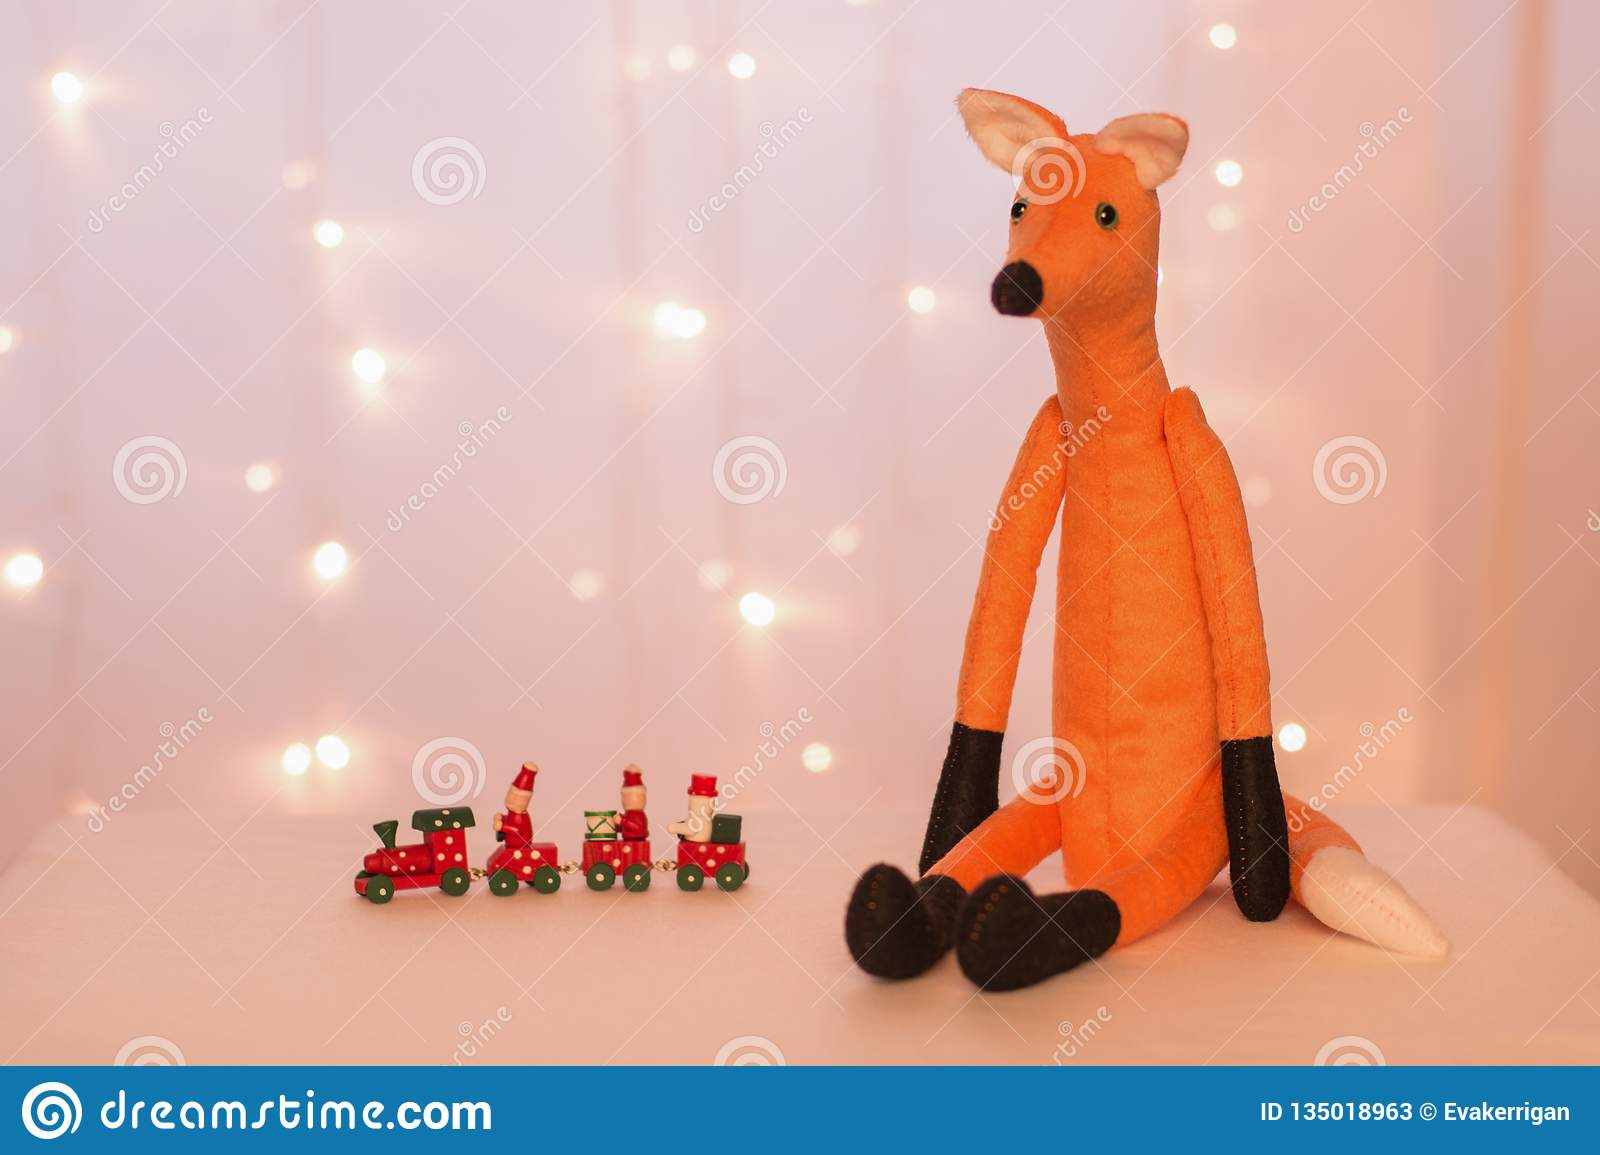 Christmas Kangaroo Lights.Handmade Red Fox Sitting On The Background Of Christmas